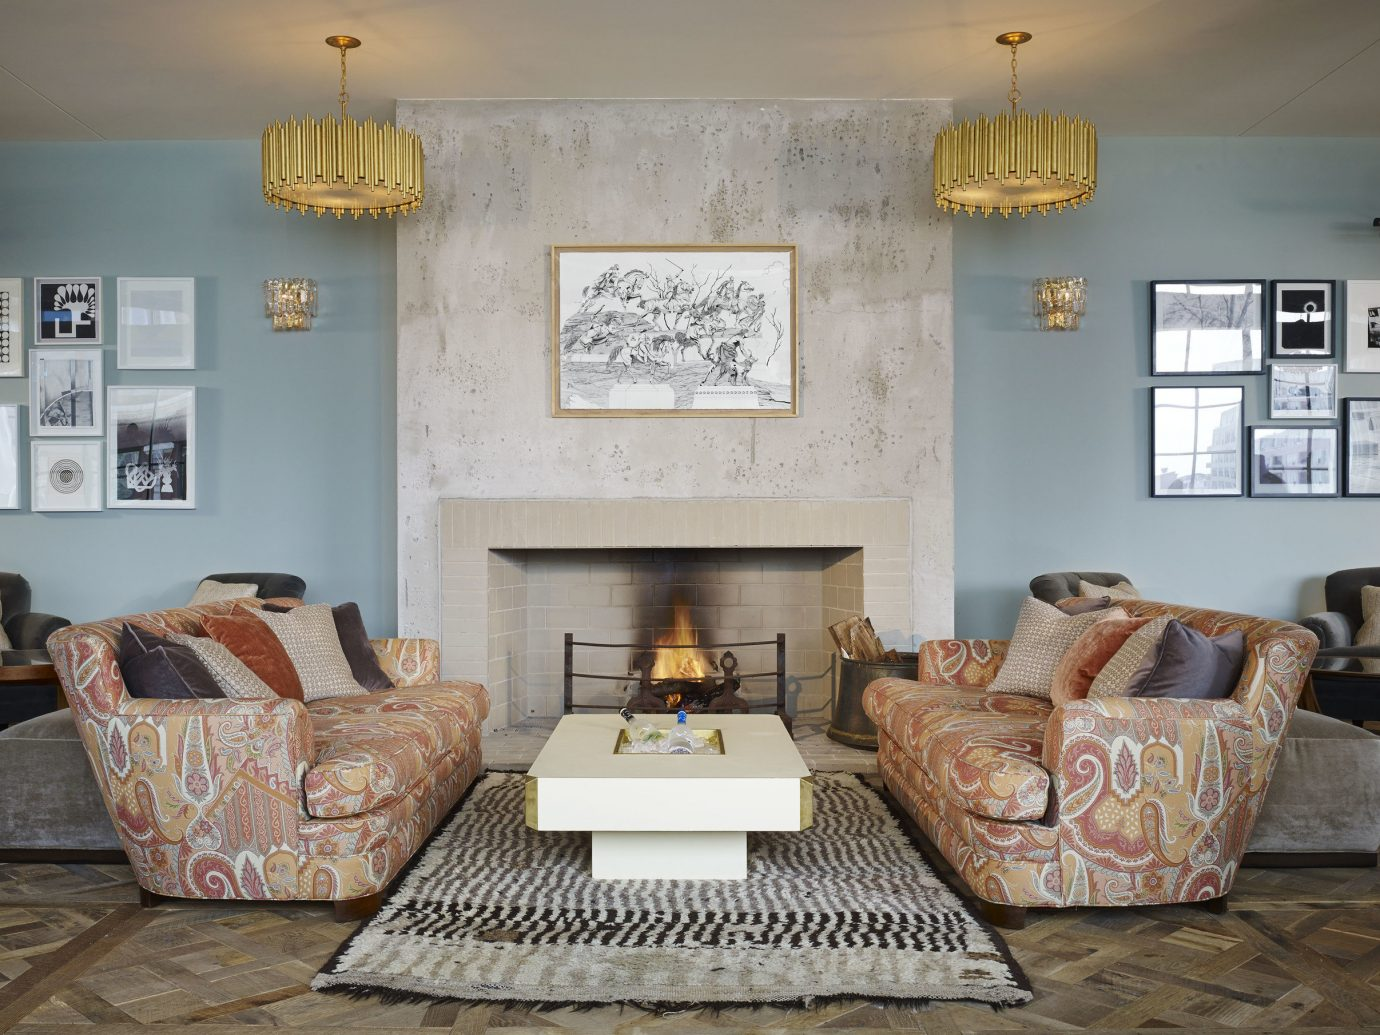 Boutique Hotels Chicago Hotels Trip Ideas indoor sofa Living wall floor room living room property home cottage estate house hardwood interior design real estate farmhouse Villa dining room Fireplace hearth apartment furniture area